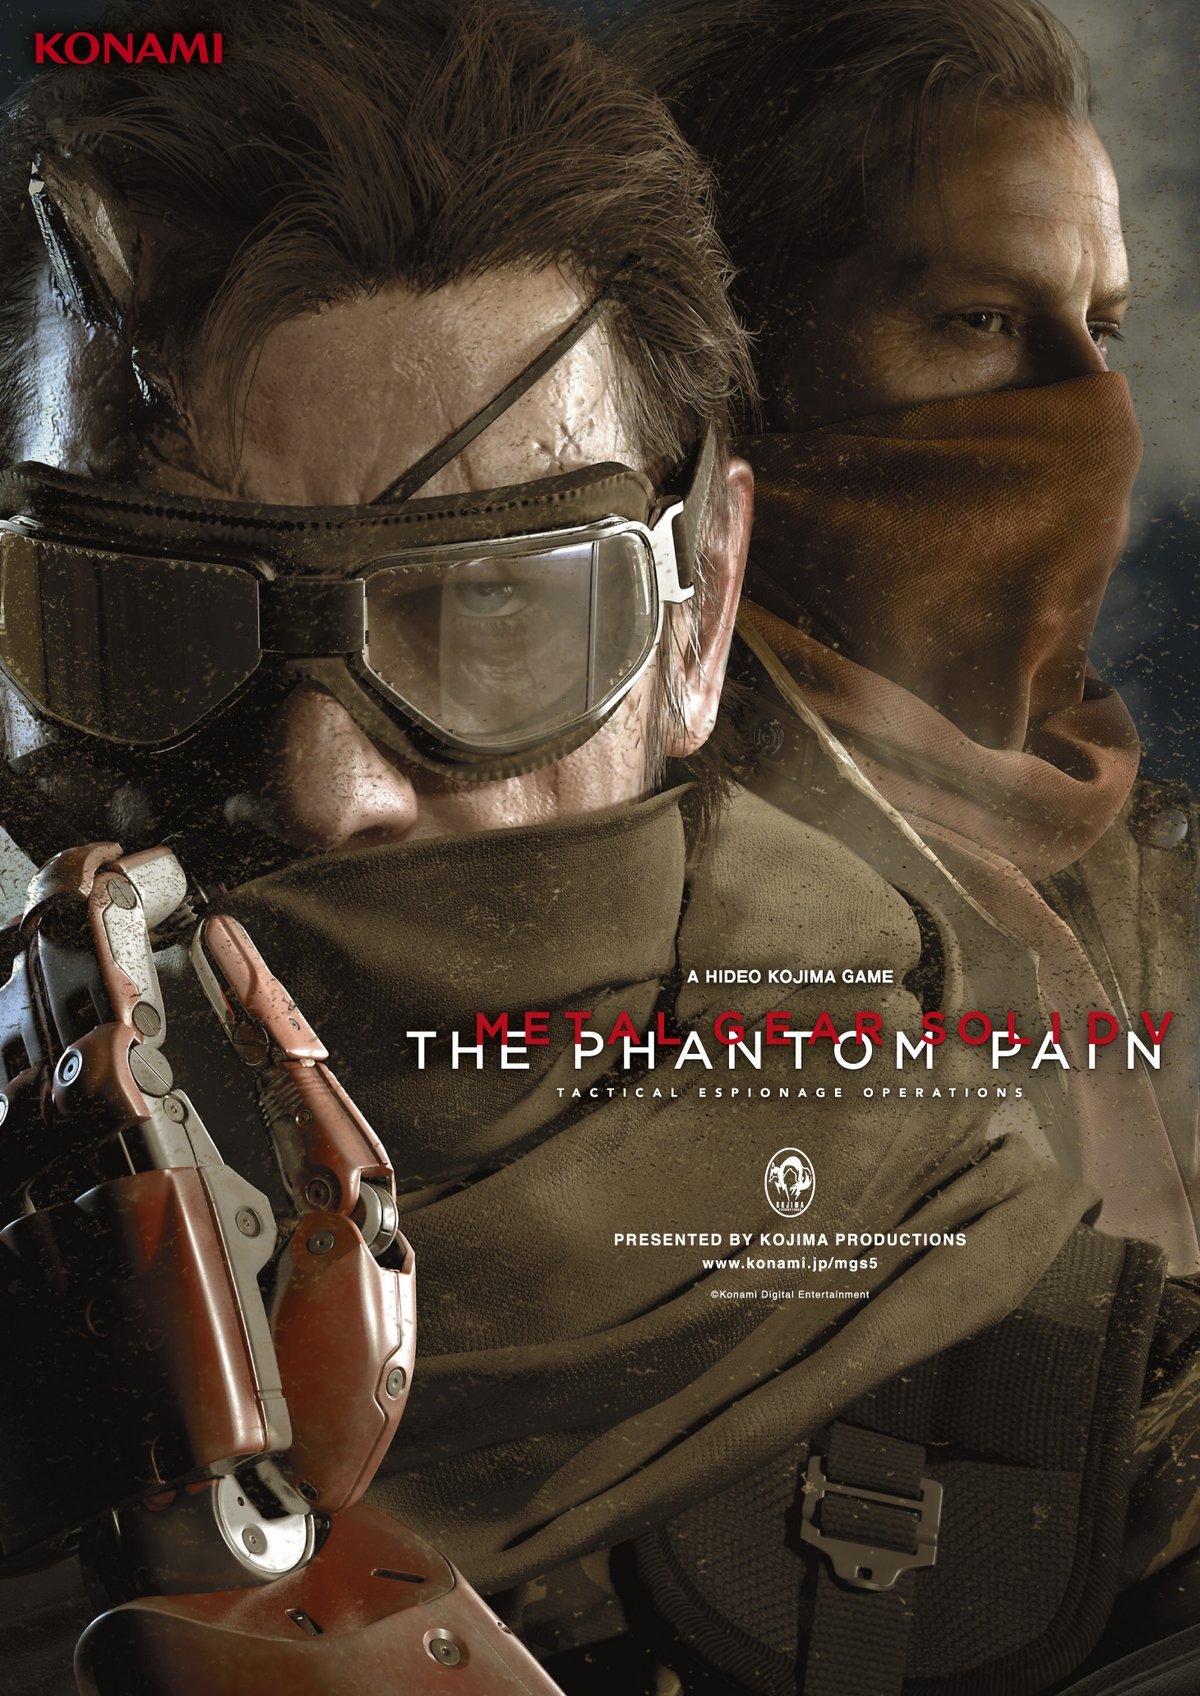 Metal Gear Solid V: The Phantom Pain (PS4 / PlayStation 4) News.